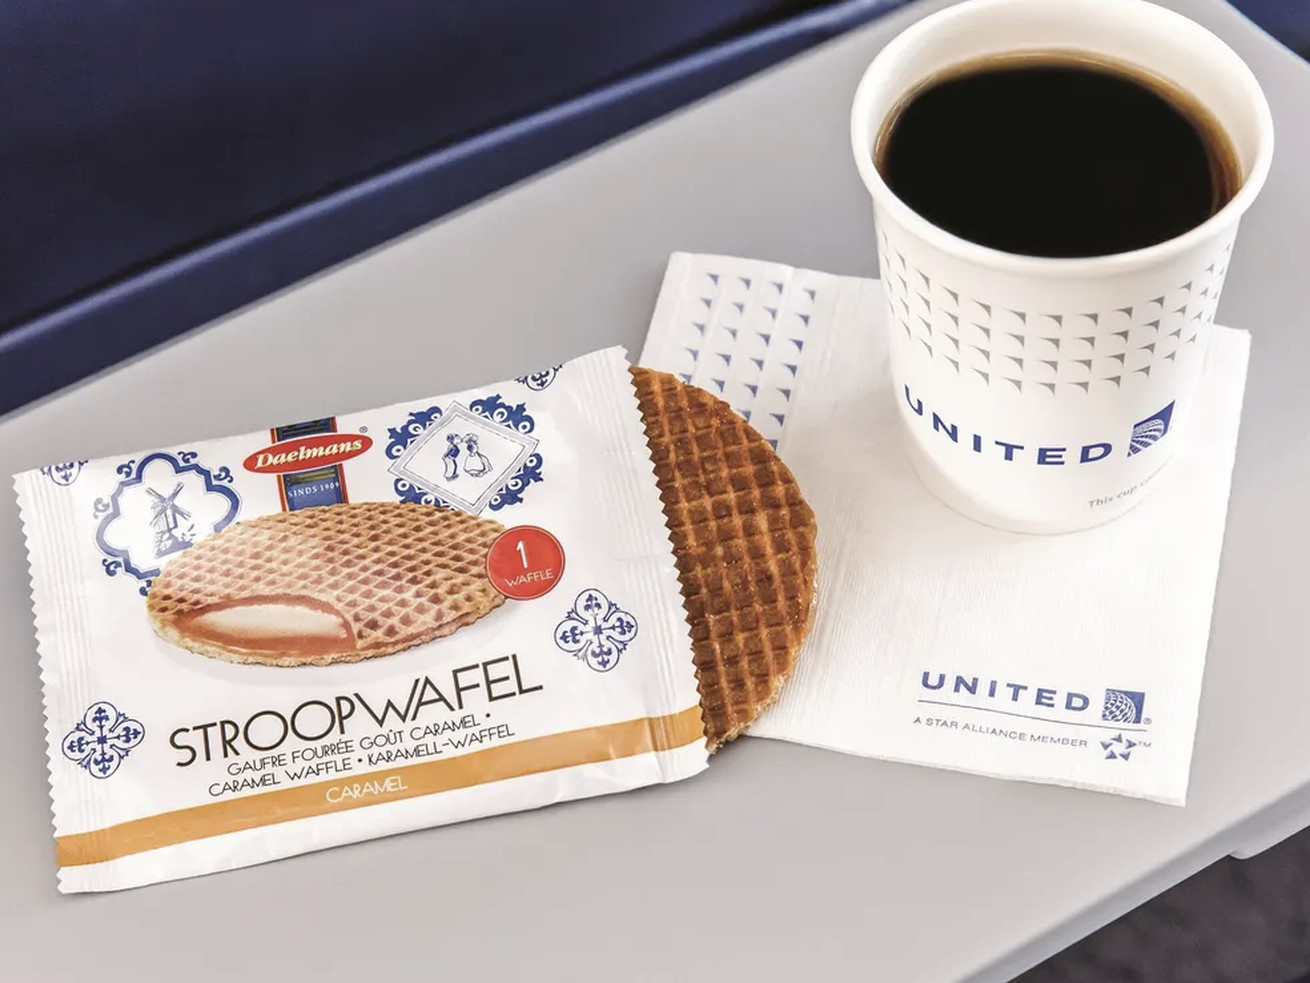 Airplane Snacks at Home Is the Latest Brand Attempt at Normalcy